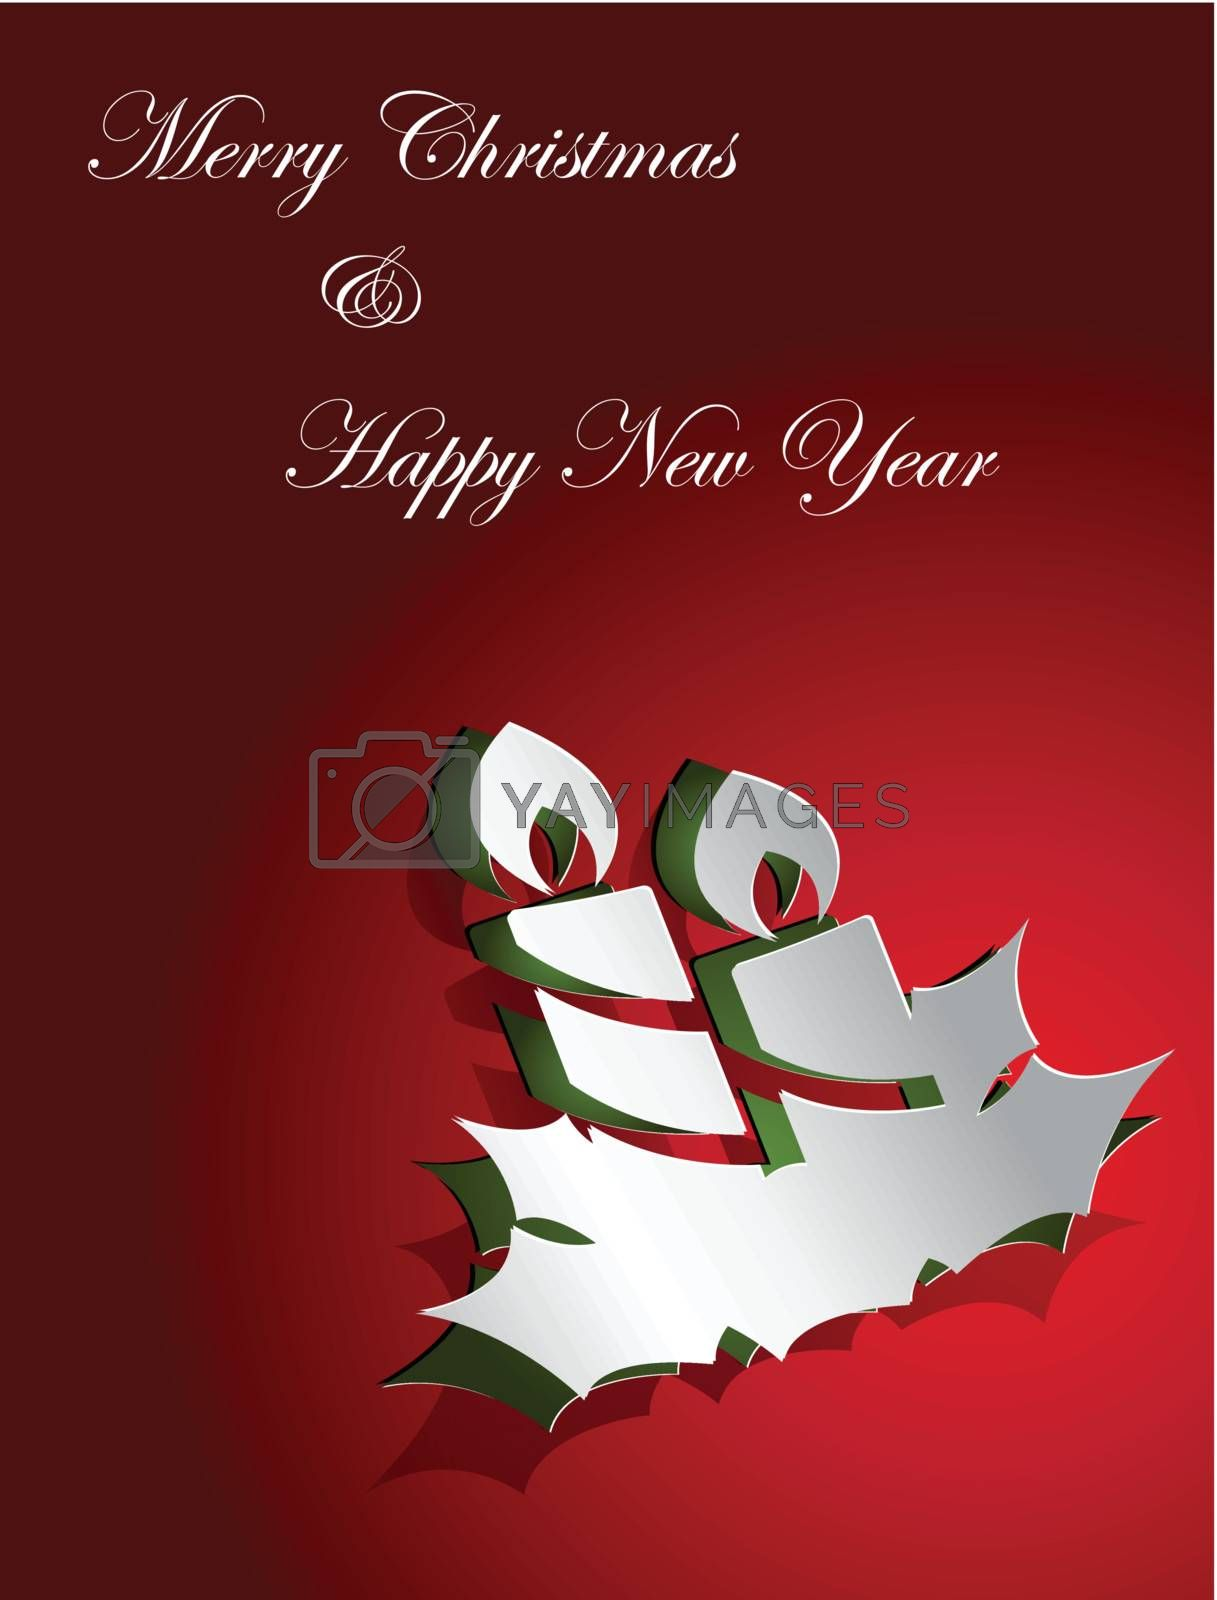 Christmas card design candle sticker paper cut